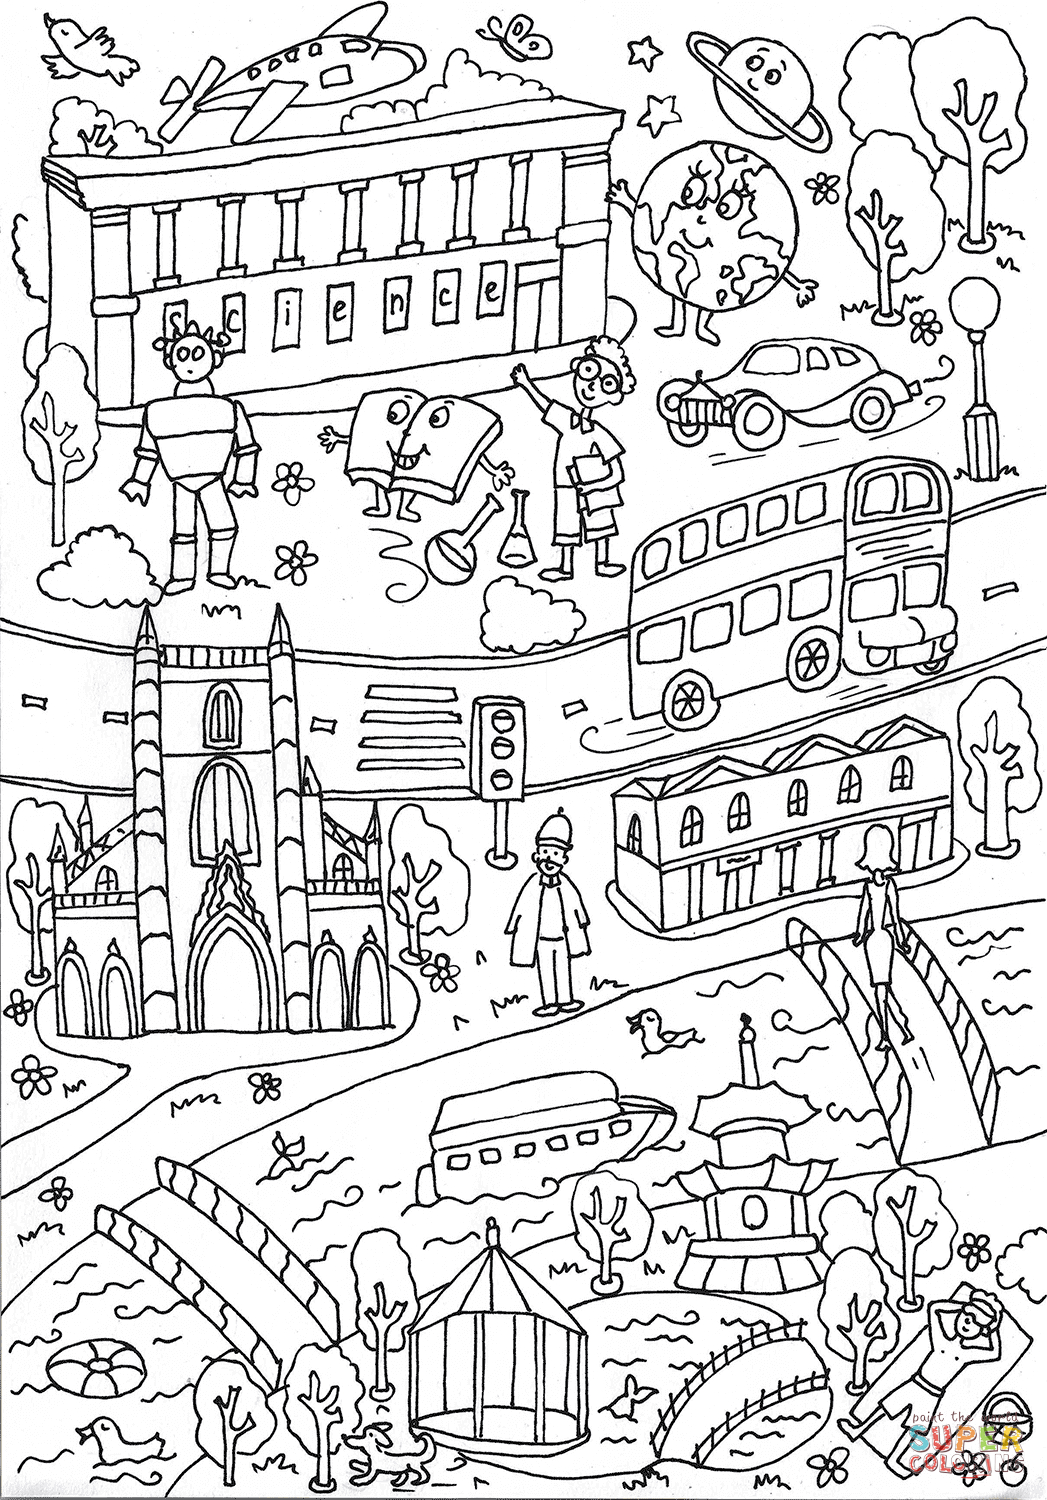 Science Museum And Battersea Park Coloring Page   Free Printable - Free Printable South Park Coloring Pages